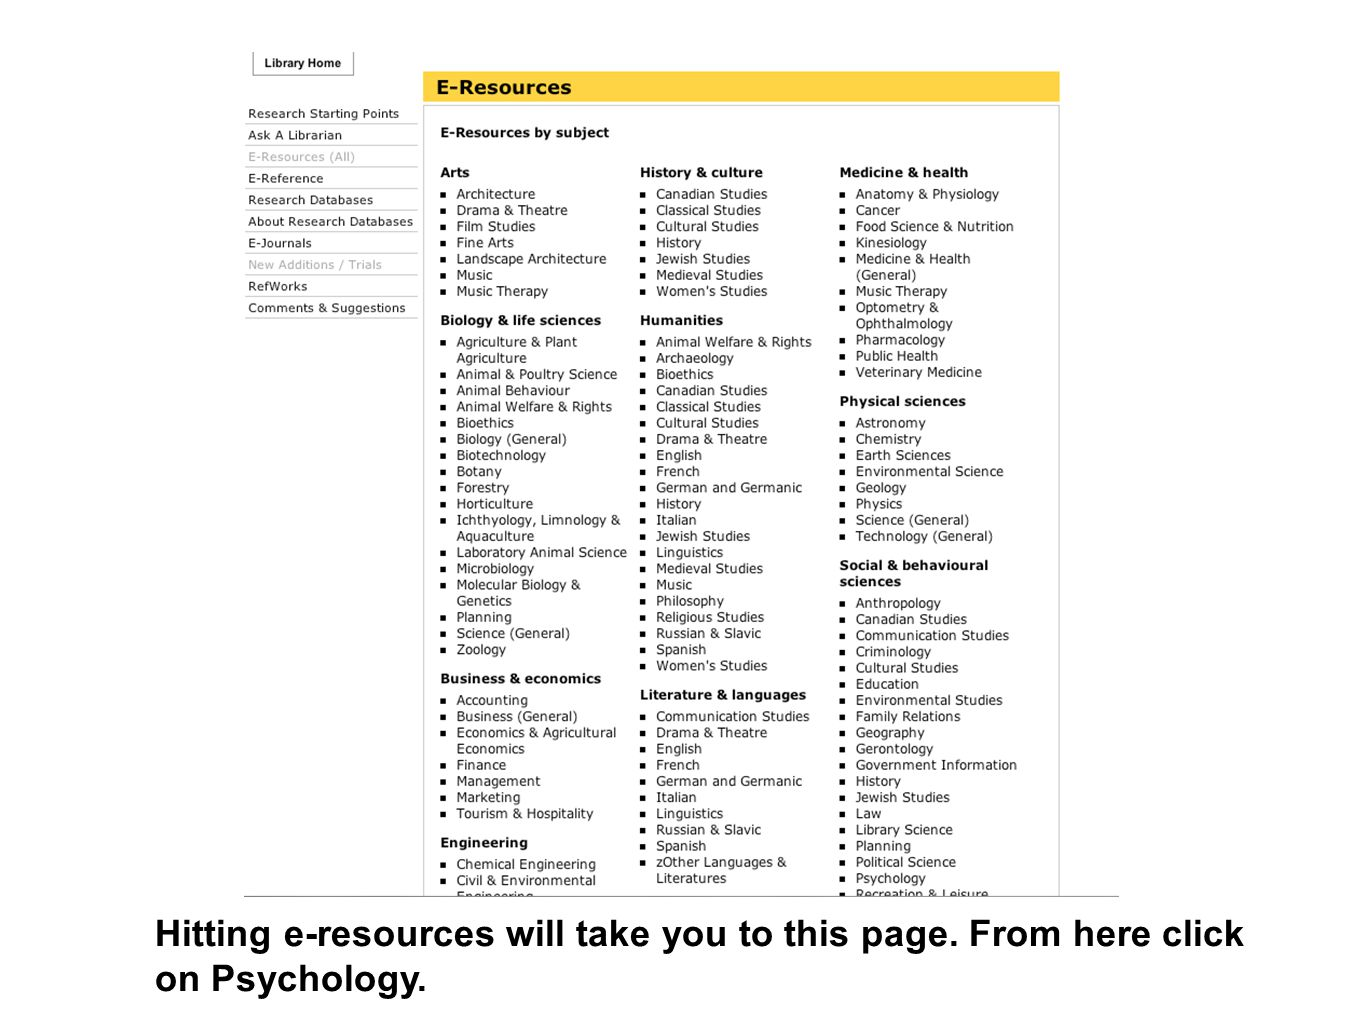 Hitting e-resources will take you to this page. From here click on Psychology.